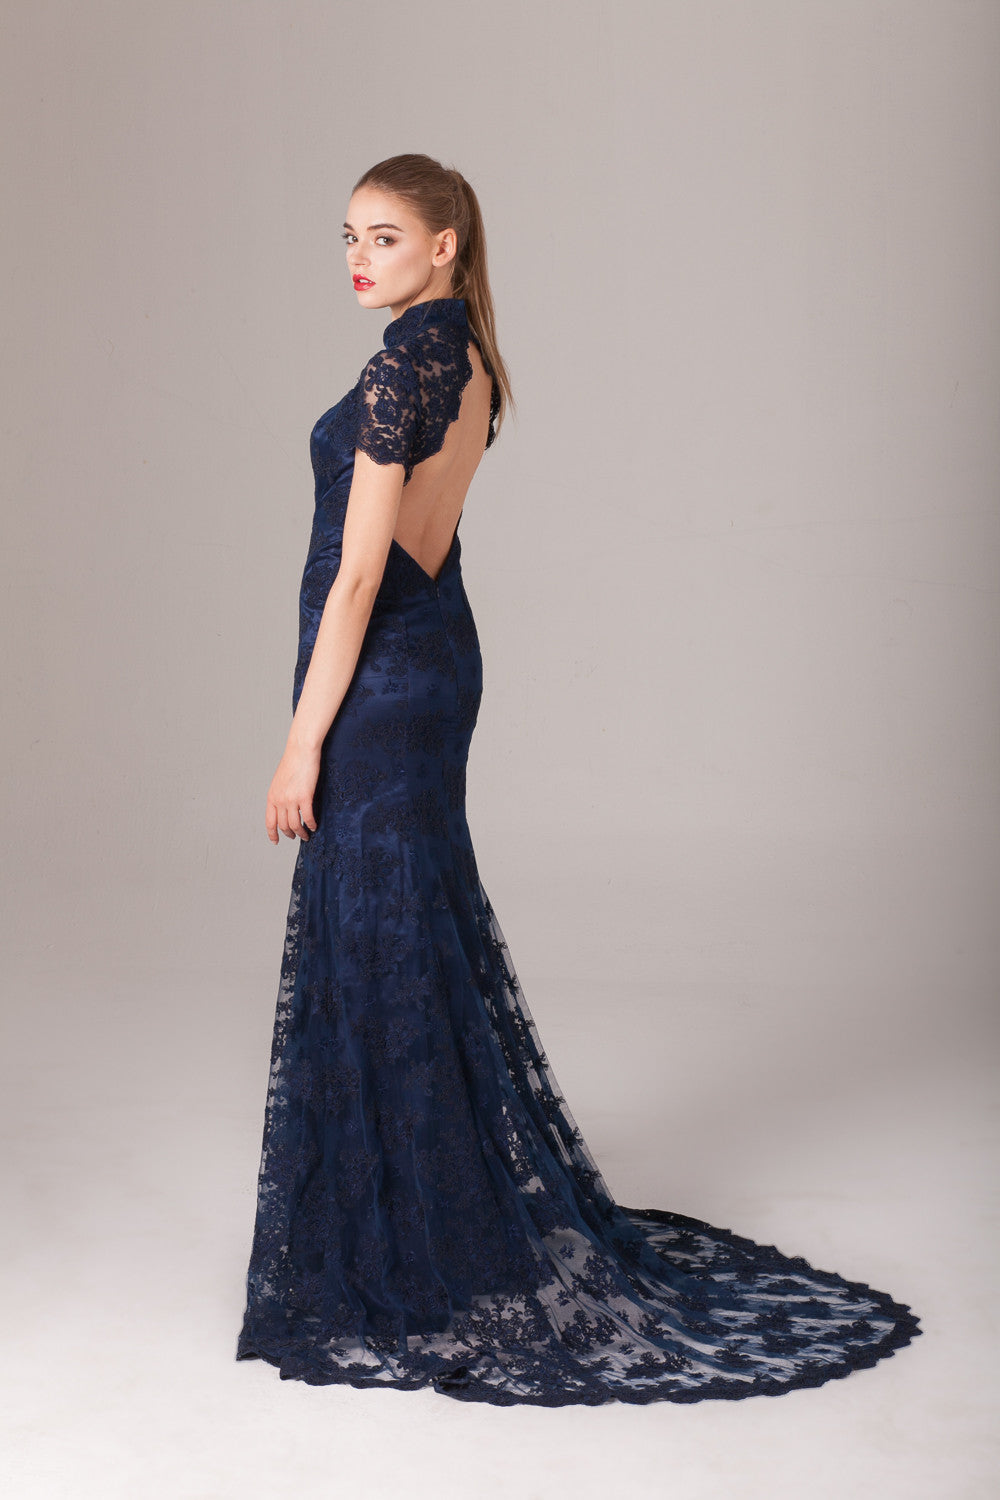 Qipology Tailor Made Backless Qipao Gown